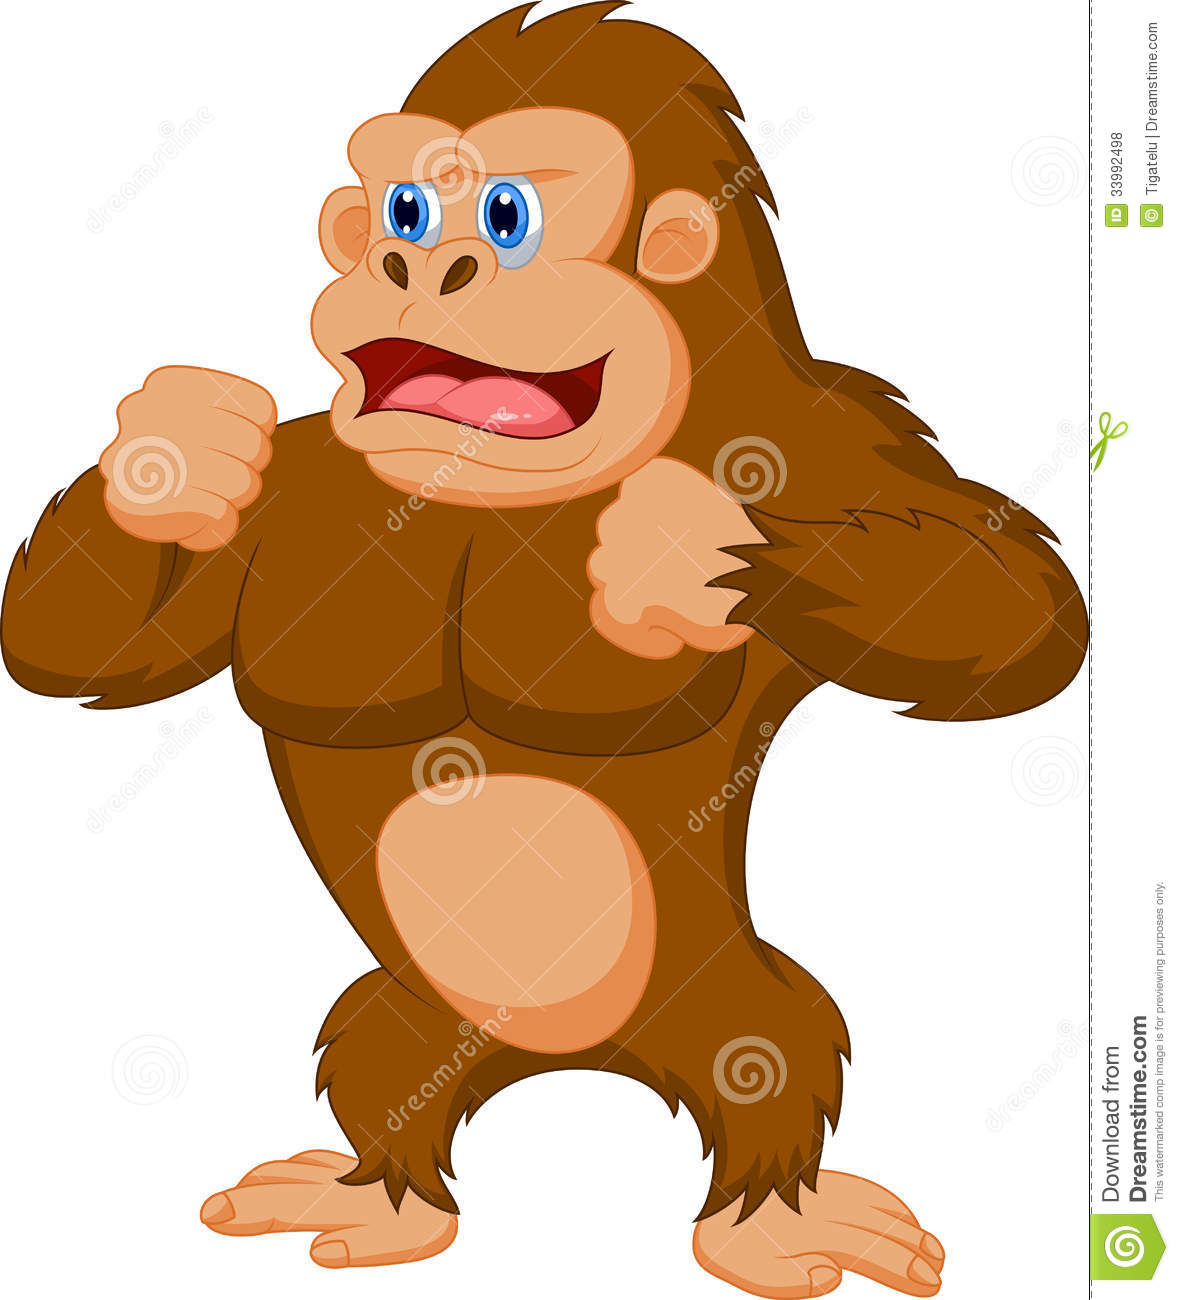 Gorilla Cartoon Stock Vector Illustration Of Kong Mammal